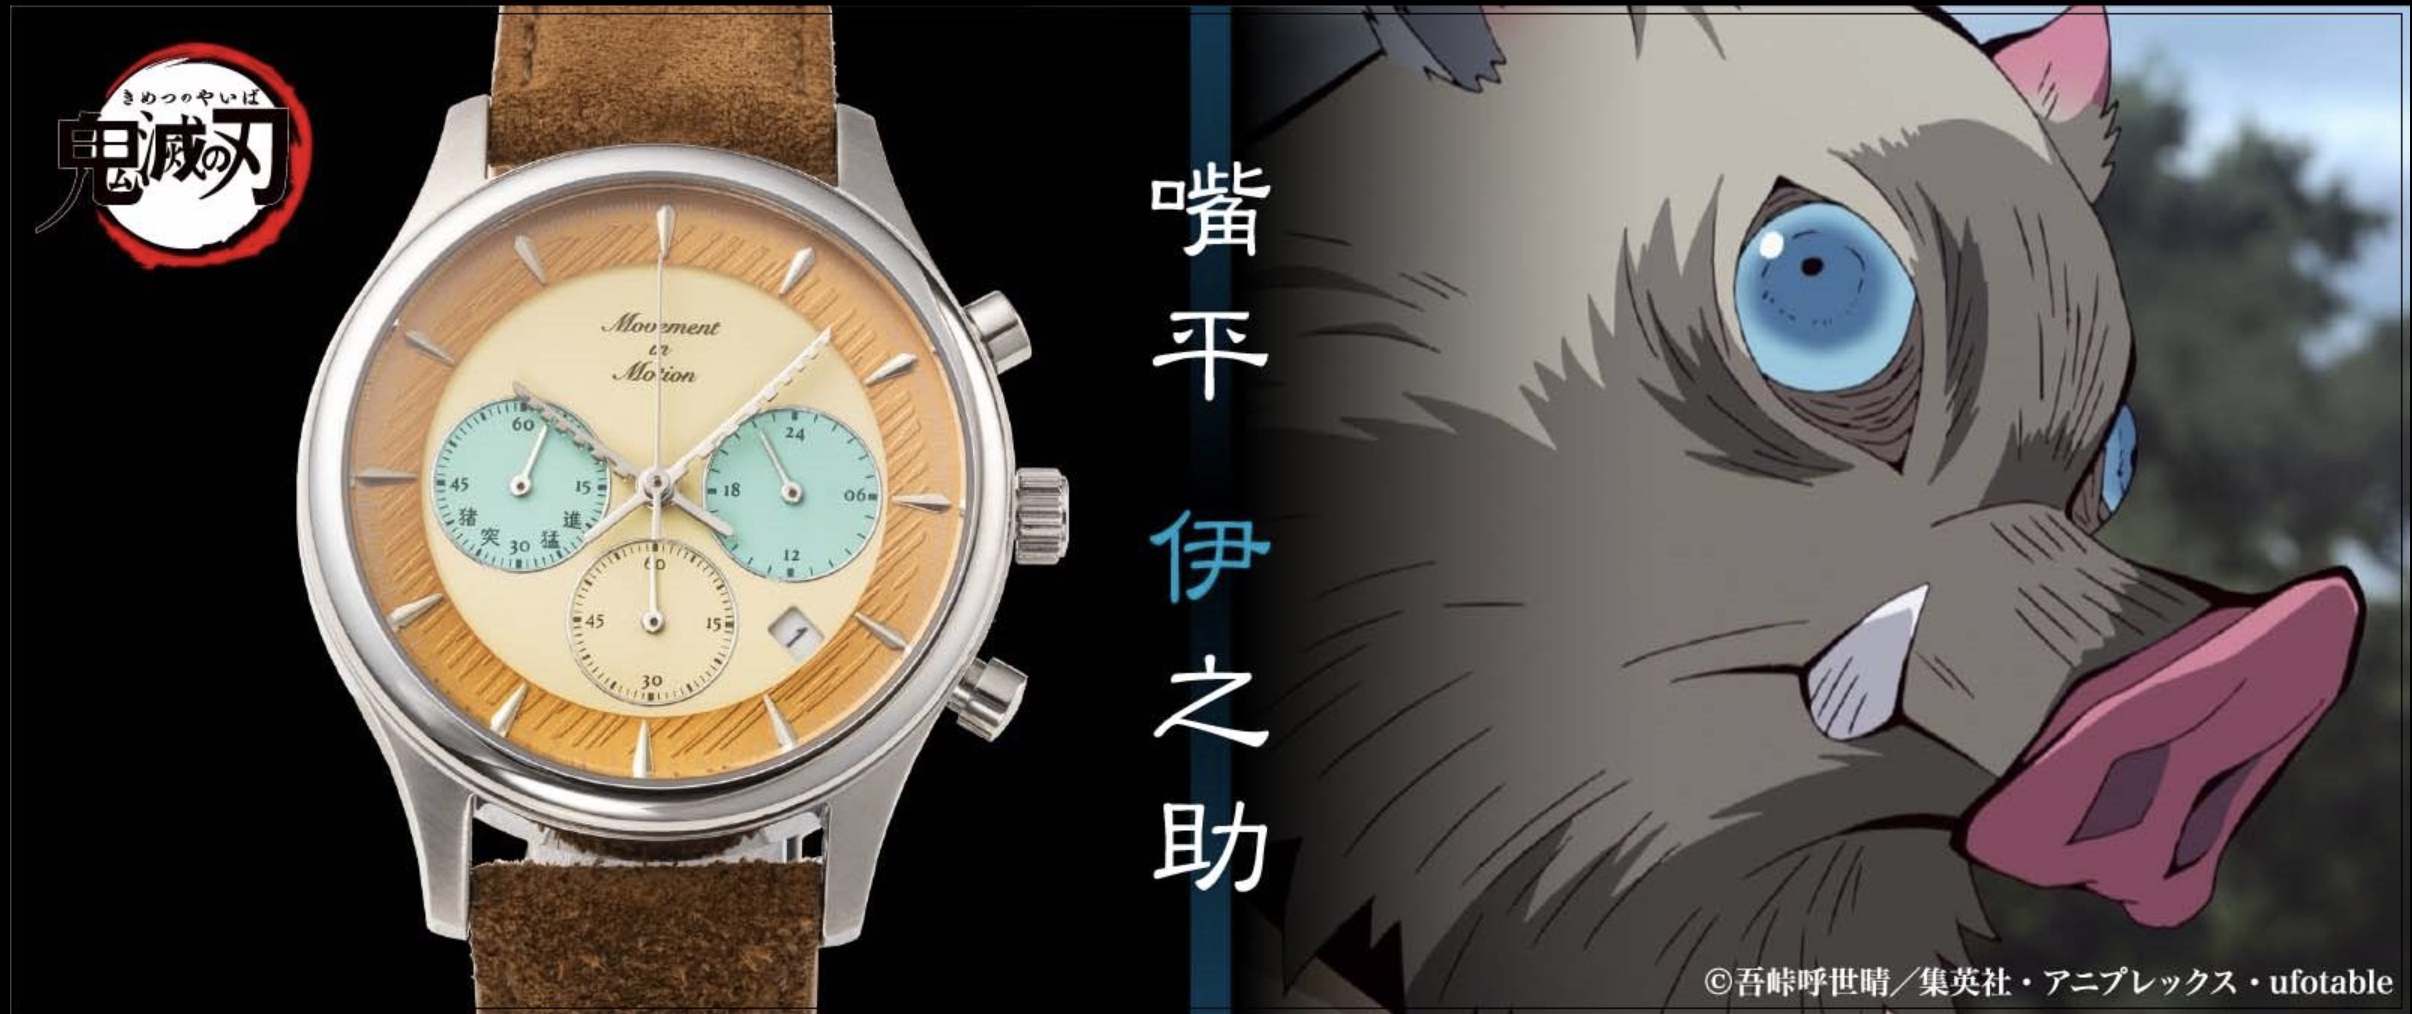 Inosuke watch